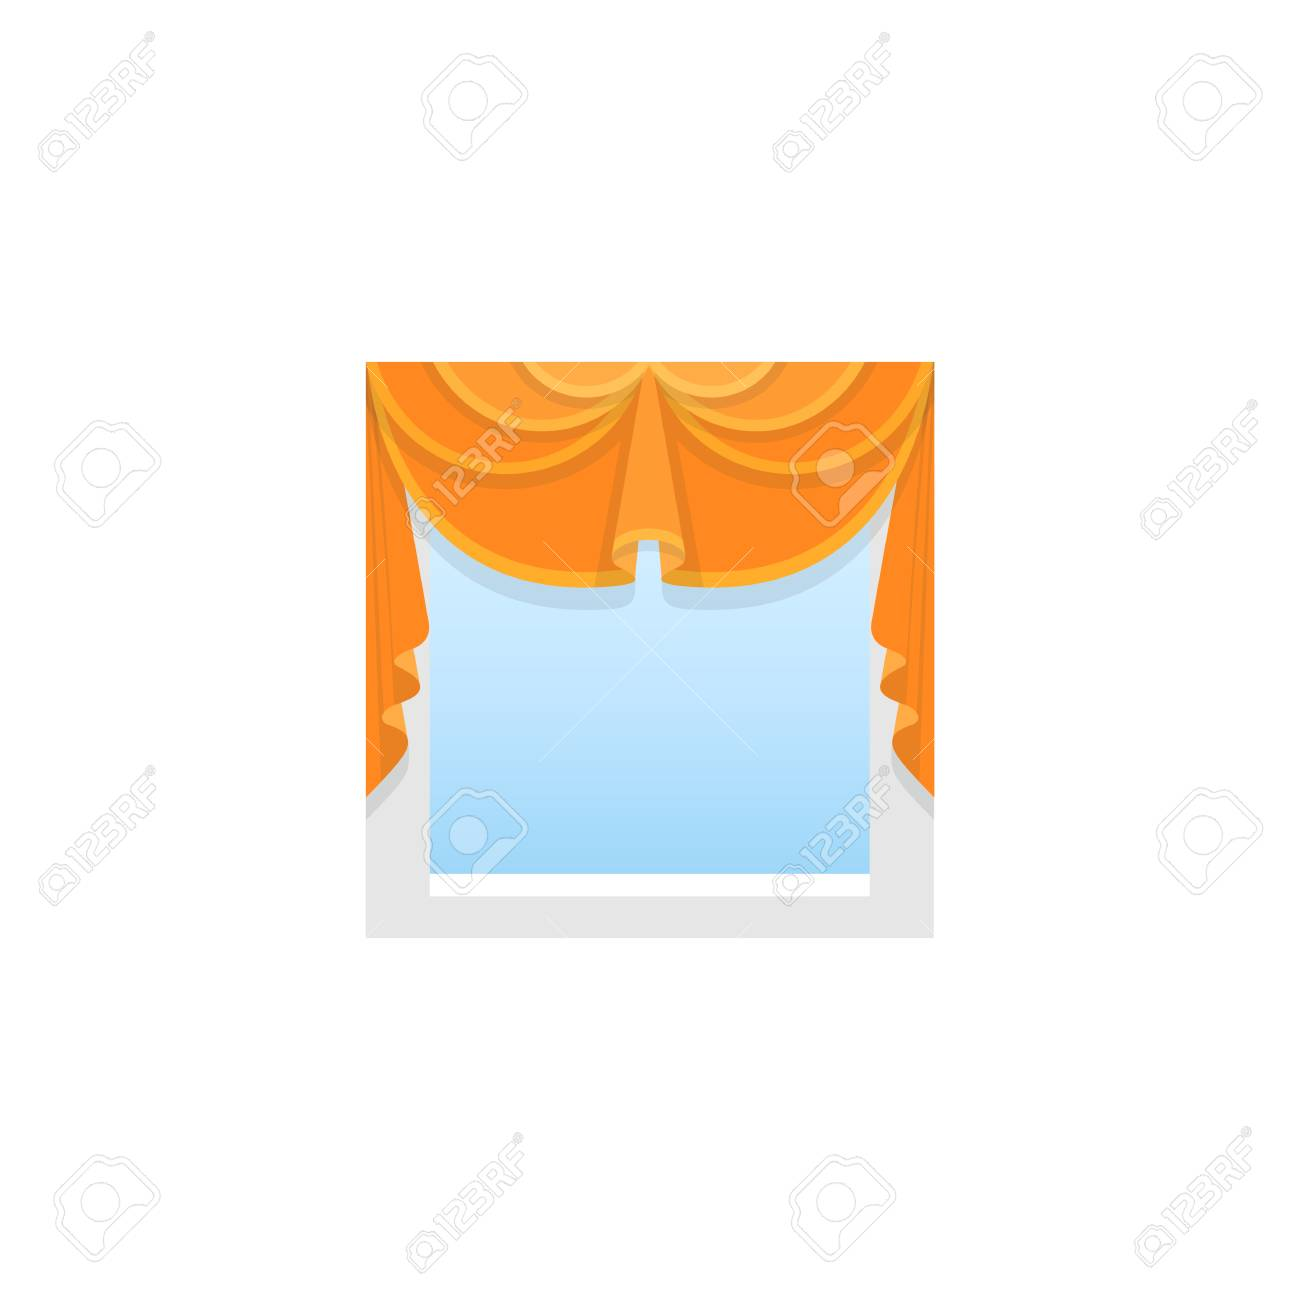 Orange fabric valance with 2 asymmetric swags. Vector illustration. Flat icon of pelmet. Element of home & office window decoration. Front view. - 108095067